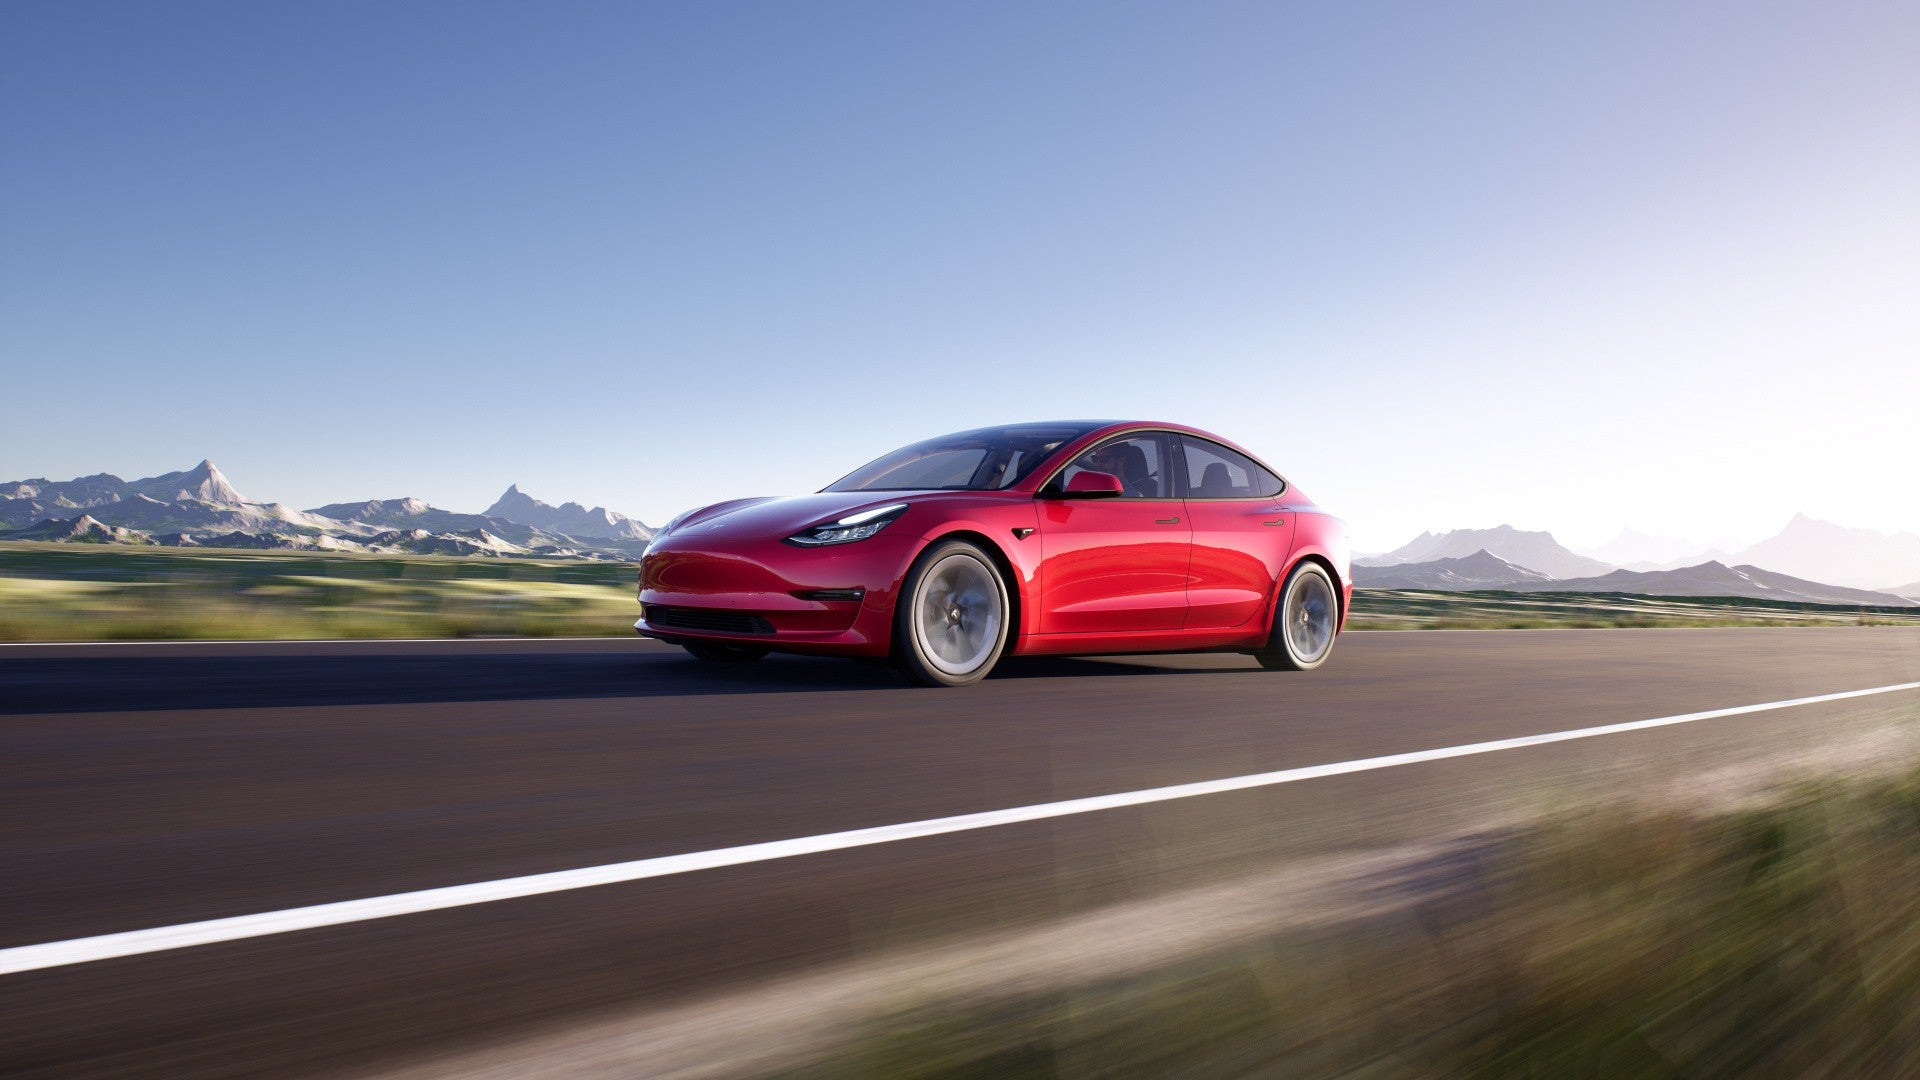 Tesla Giga Shanghai Could Supply Model 3 SR+ to European Market with Higher Profit Margin